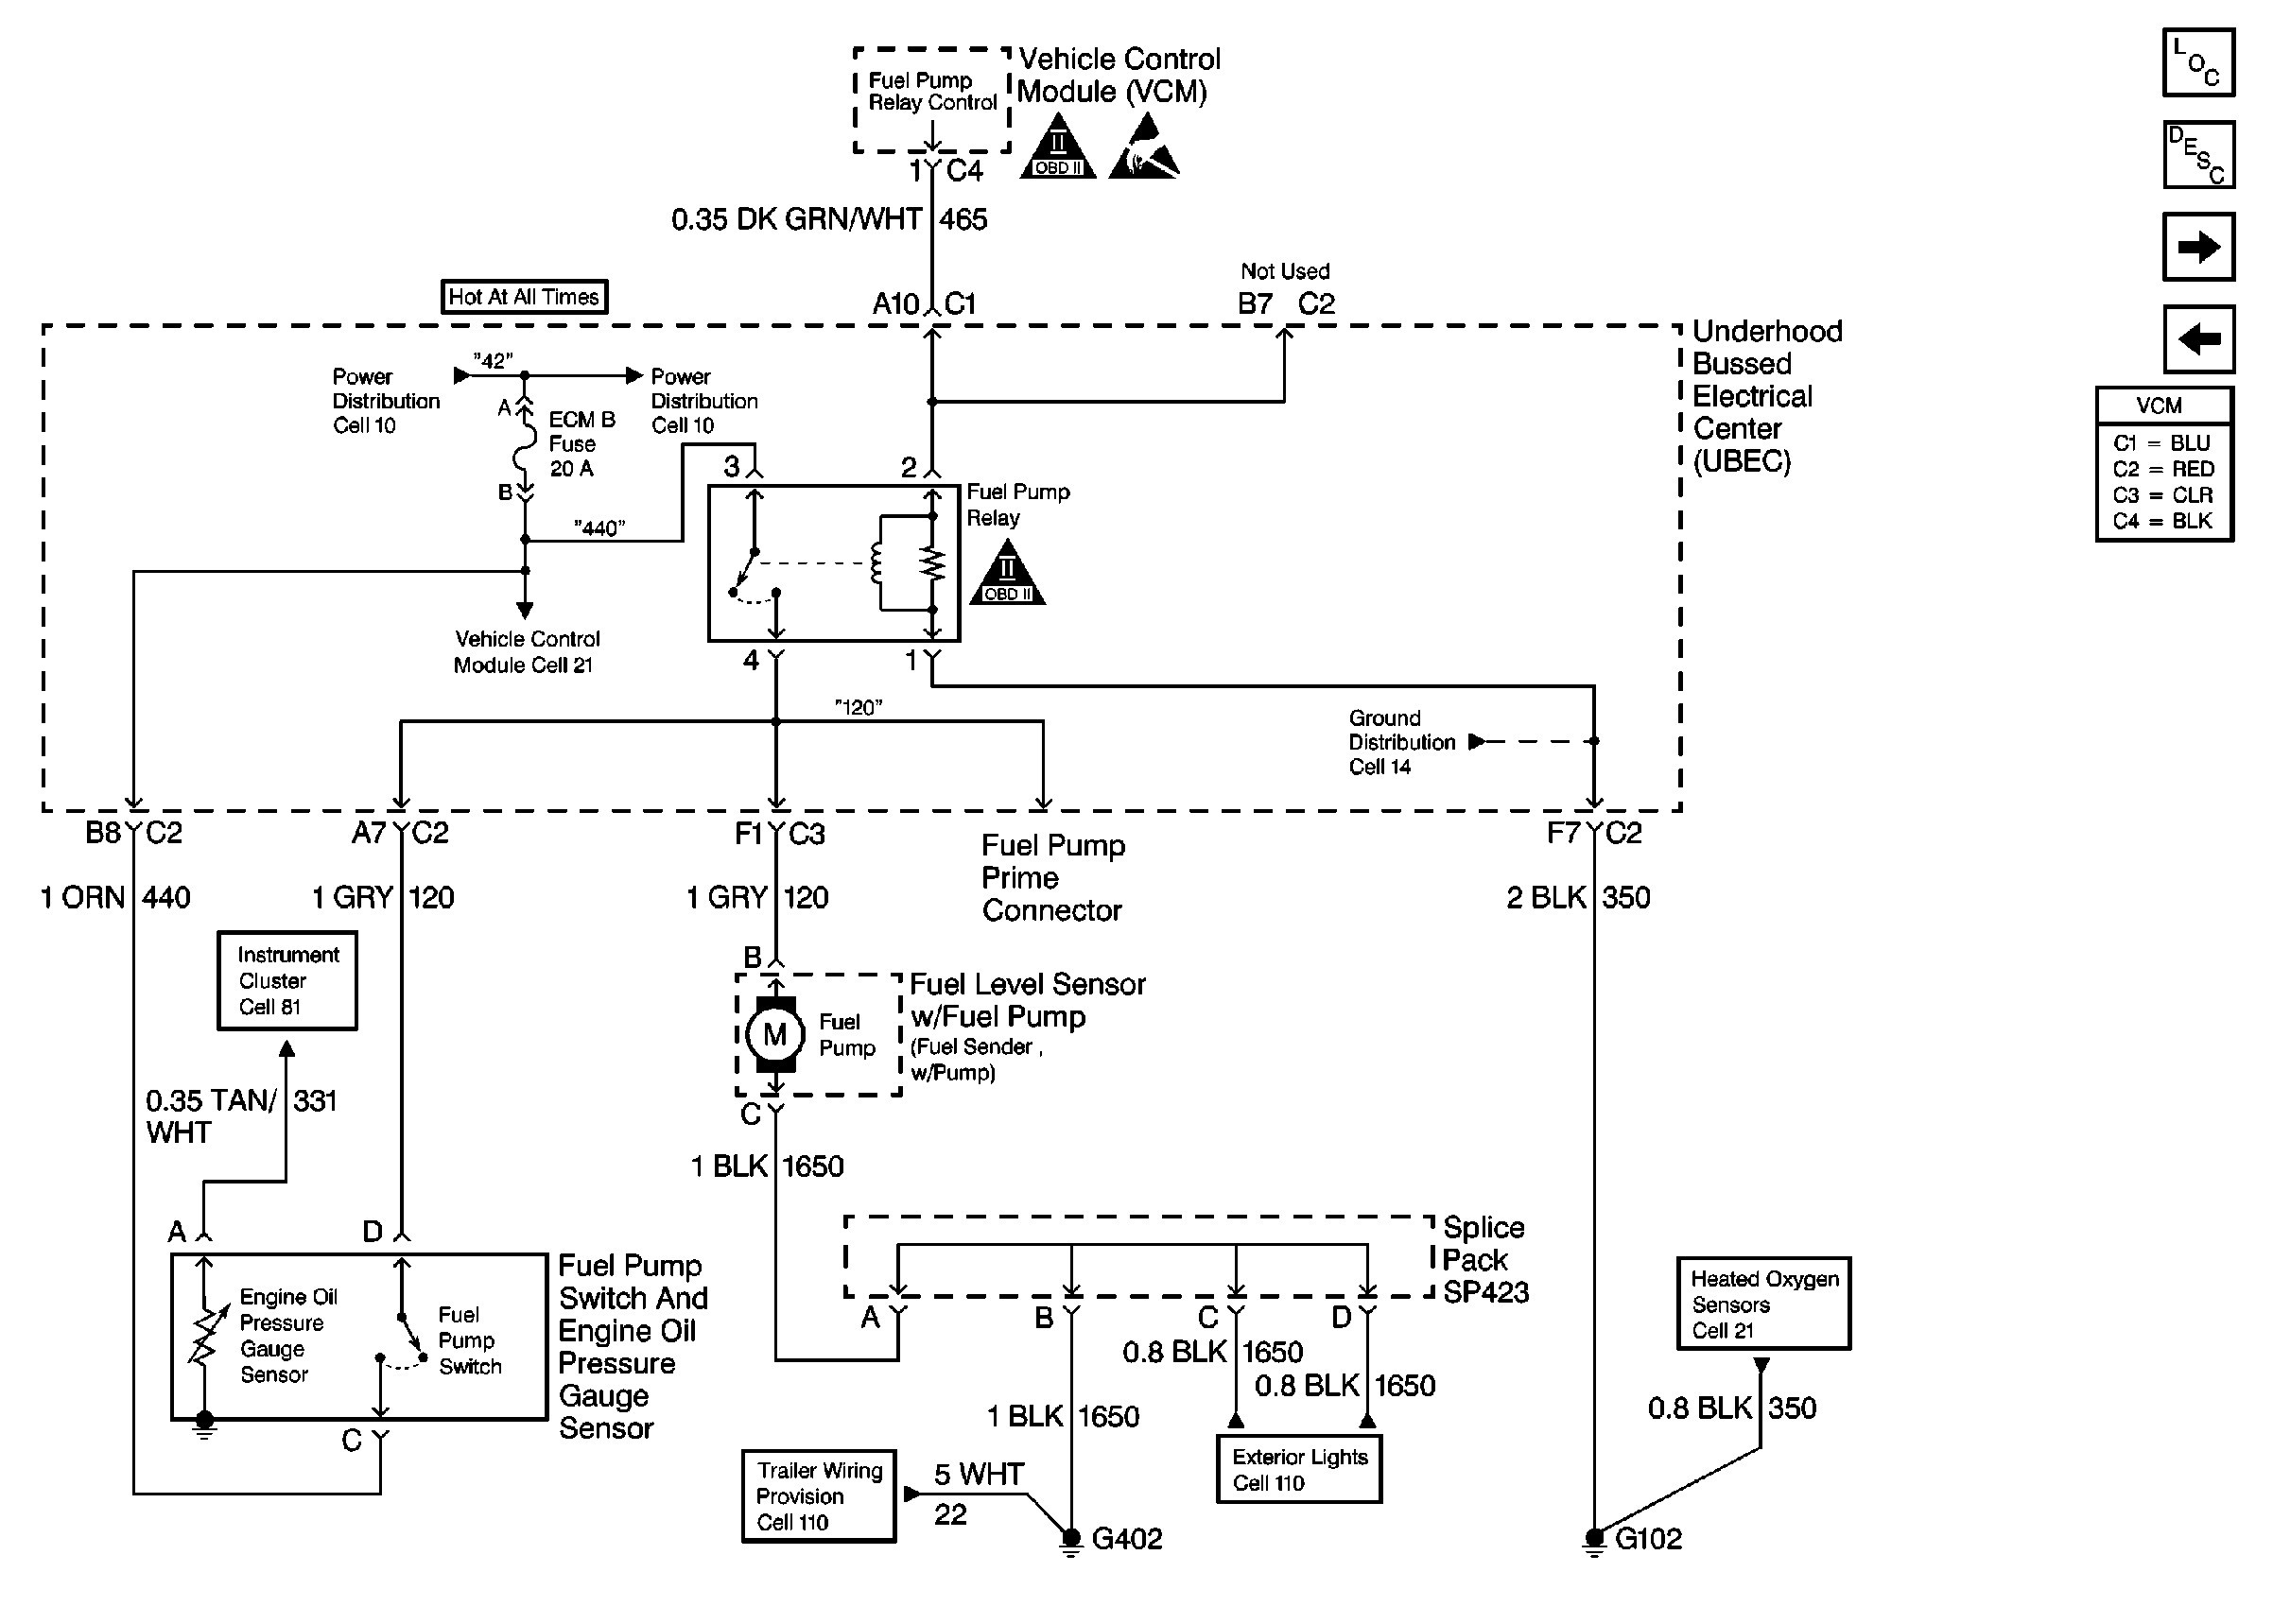 1996 Chevy S10 Fuel System Wiring Diagram Wire Center Photo Controlunit2jpeg Click To Redisplay Small Version Of Image 2004 Blazer Schematics Diagrams U2022 Rh Seniorlivinguniversity Co 96